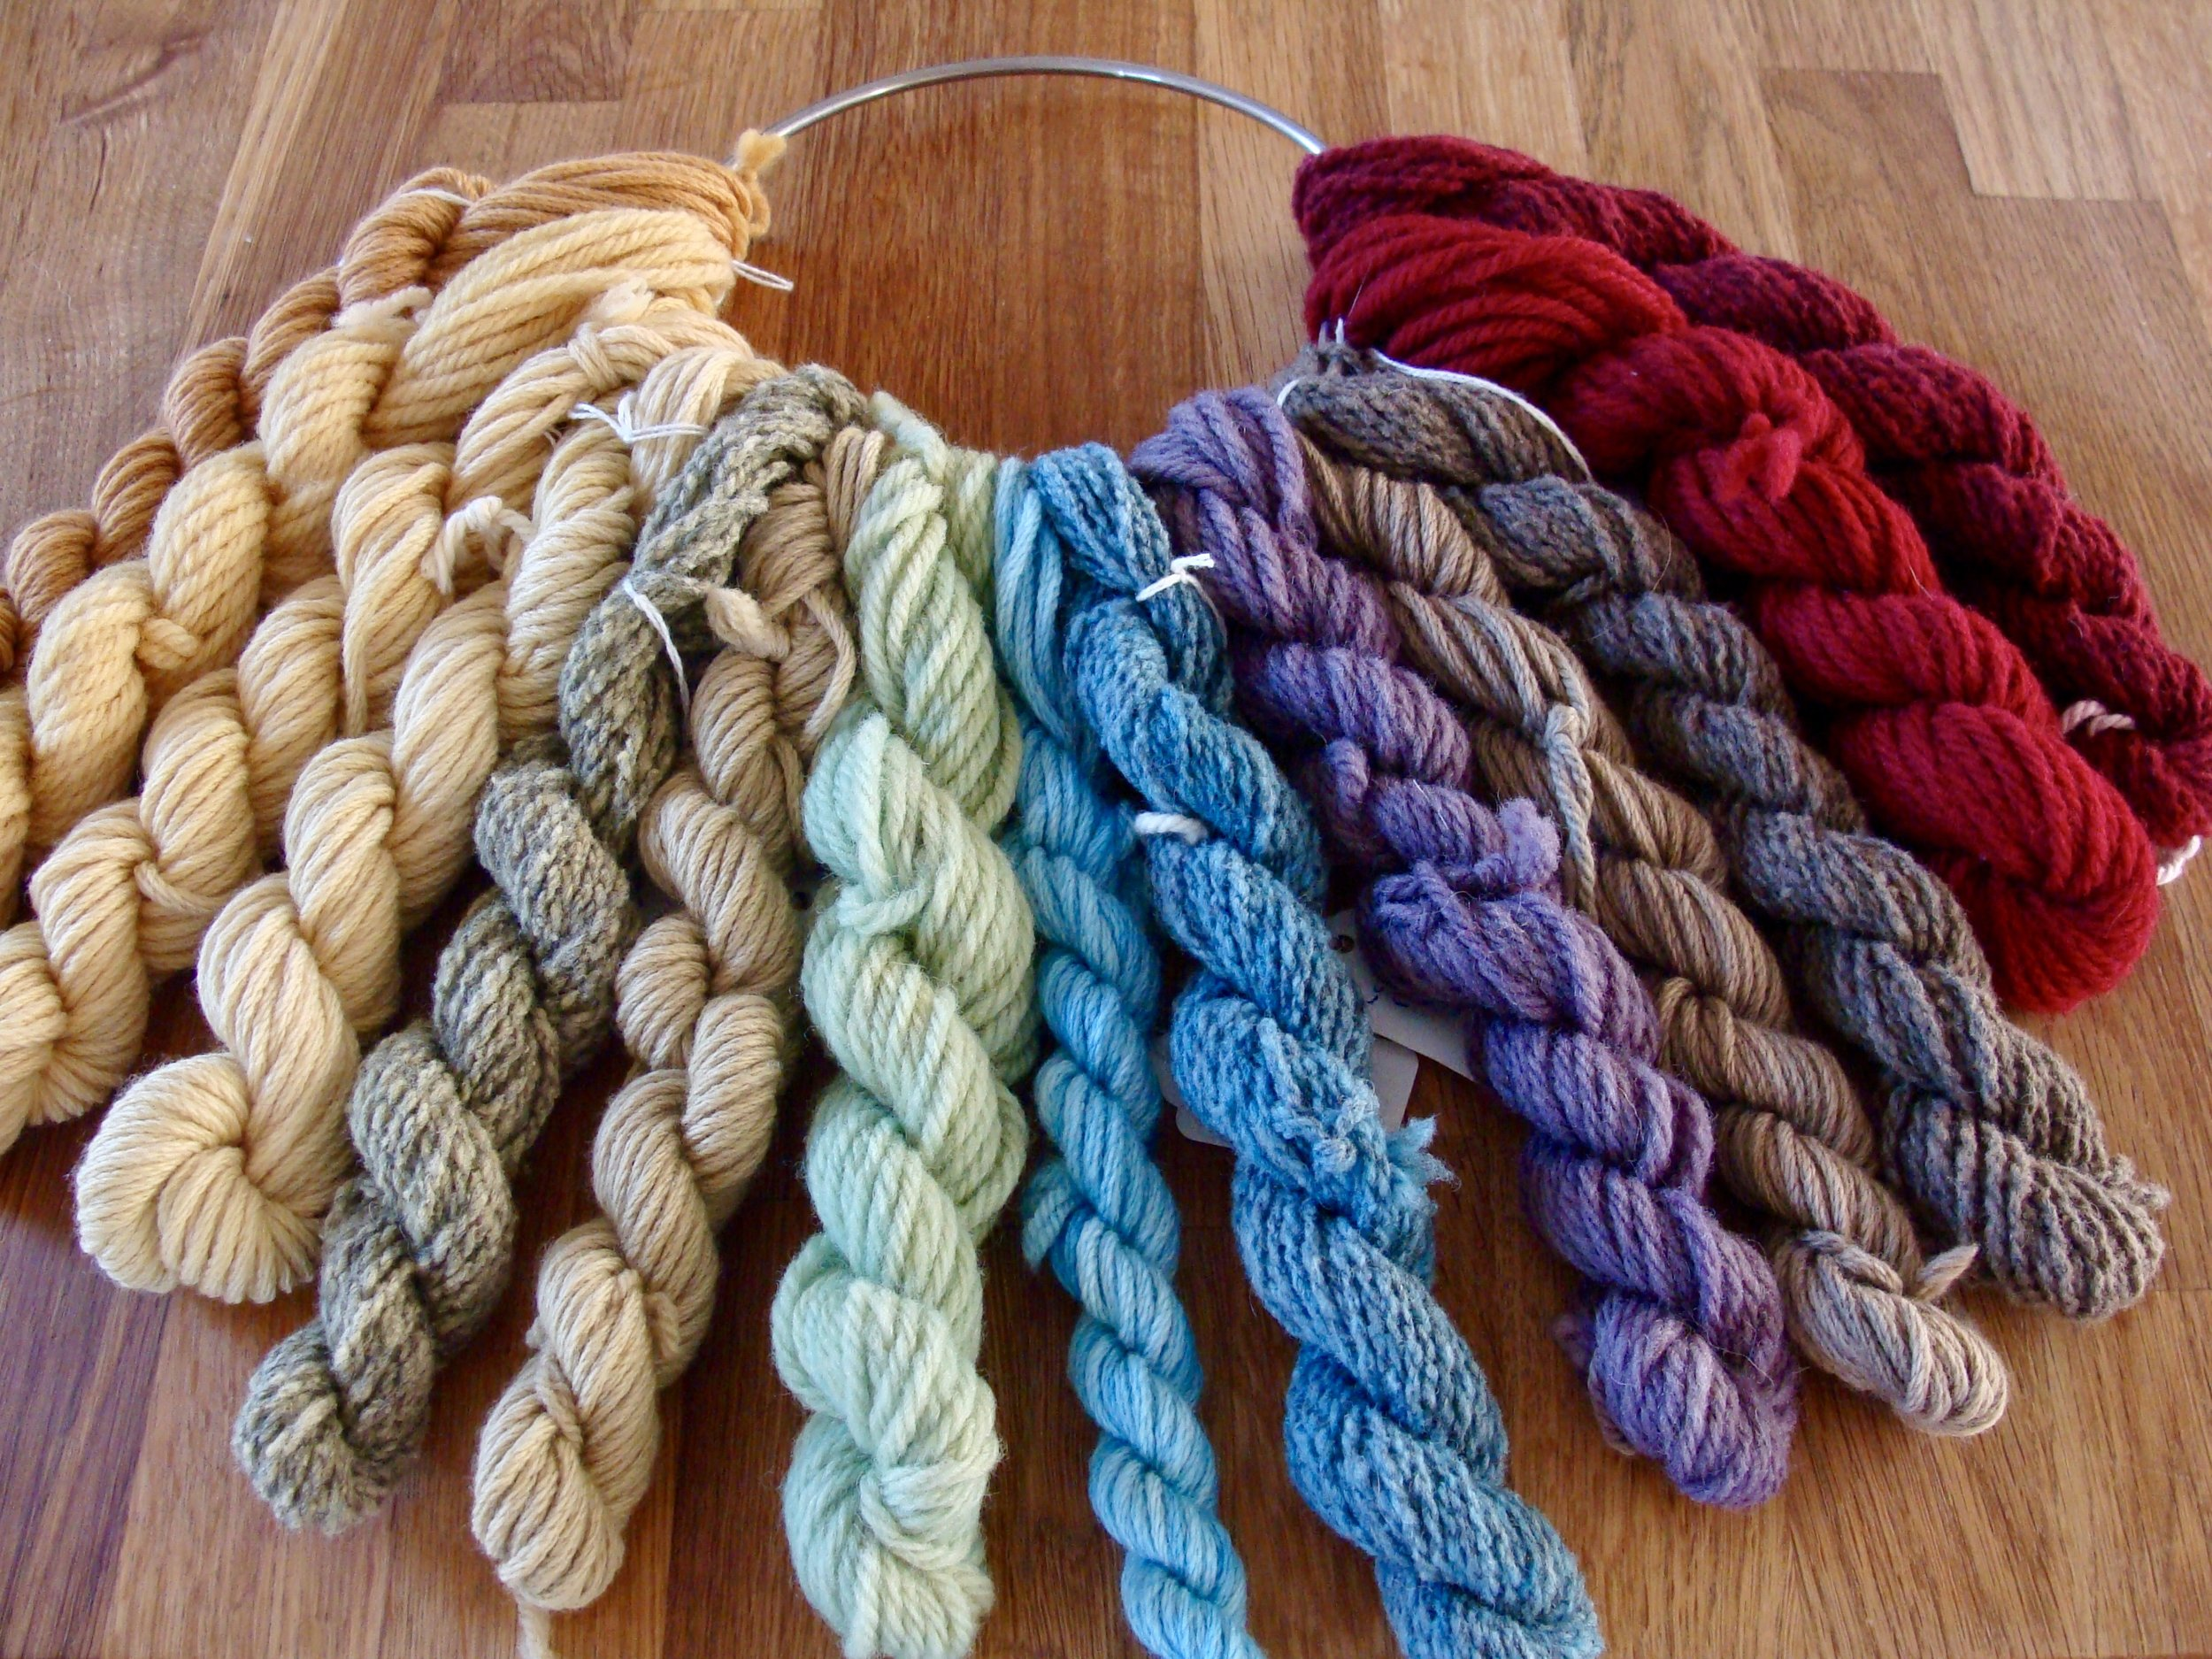 Natural Dyed Color Wheel of Yarn